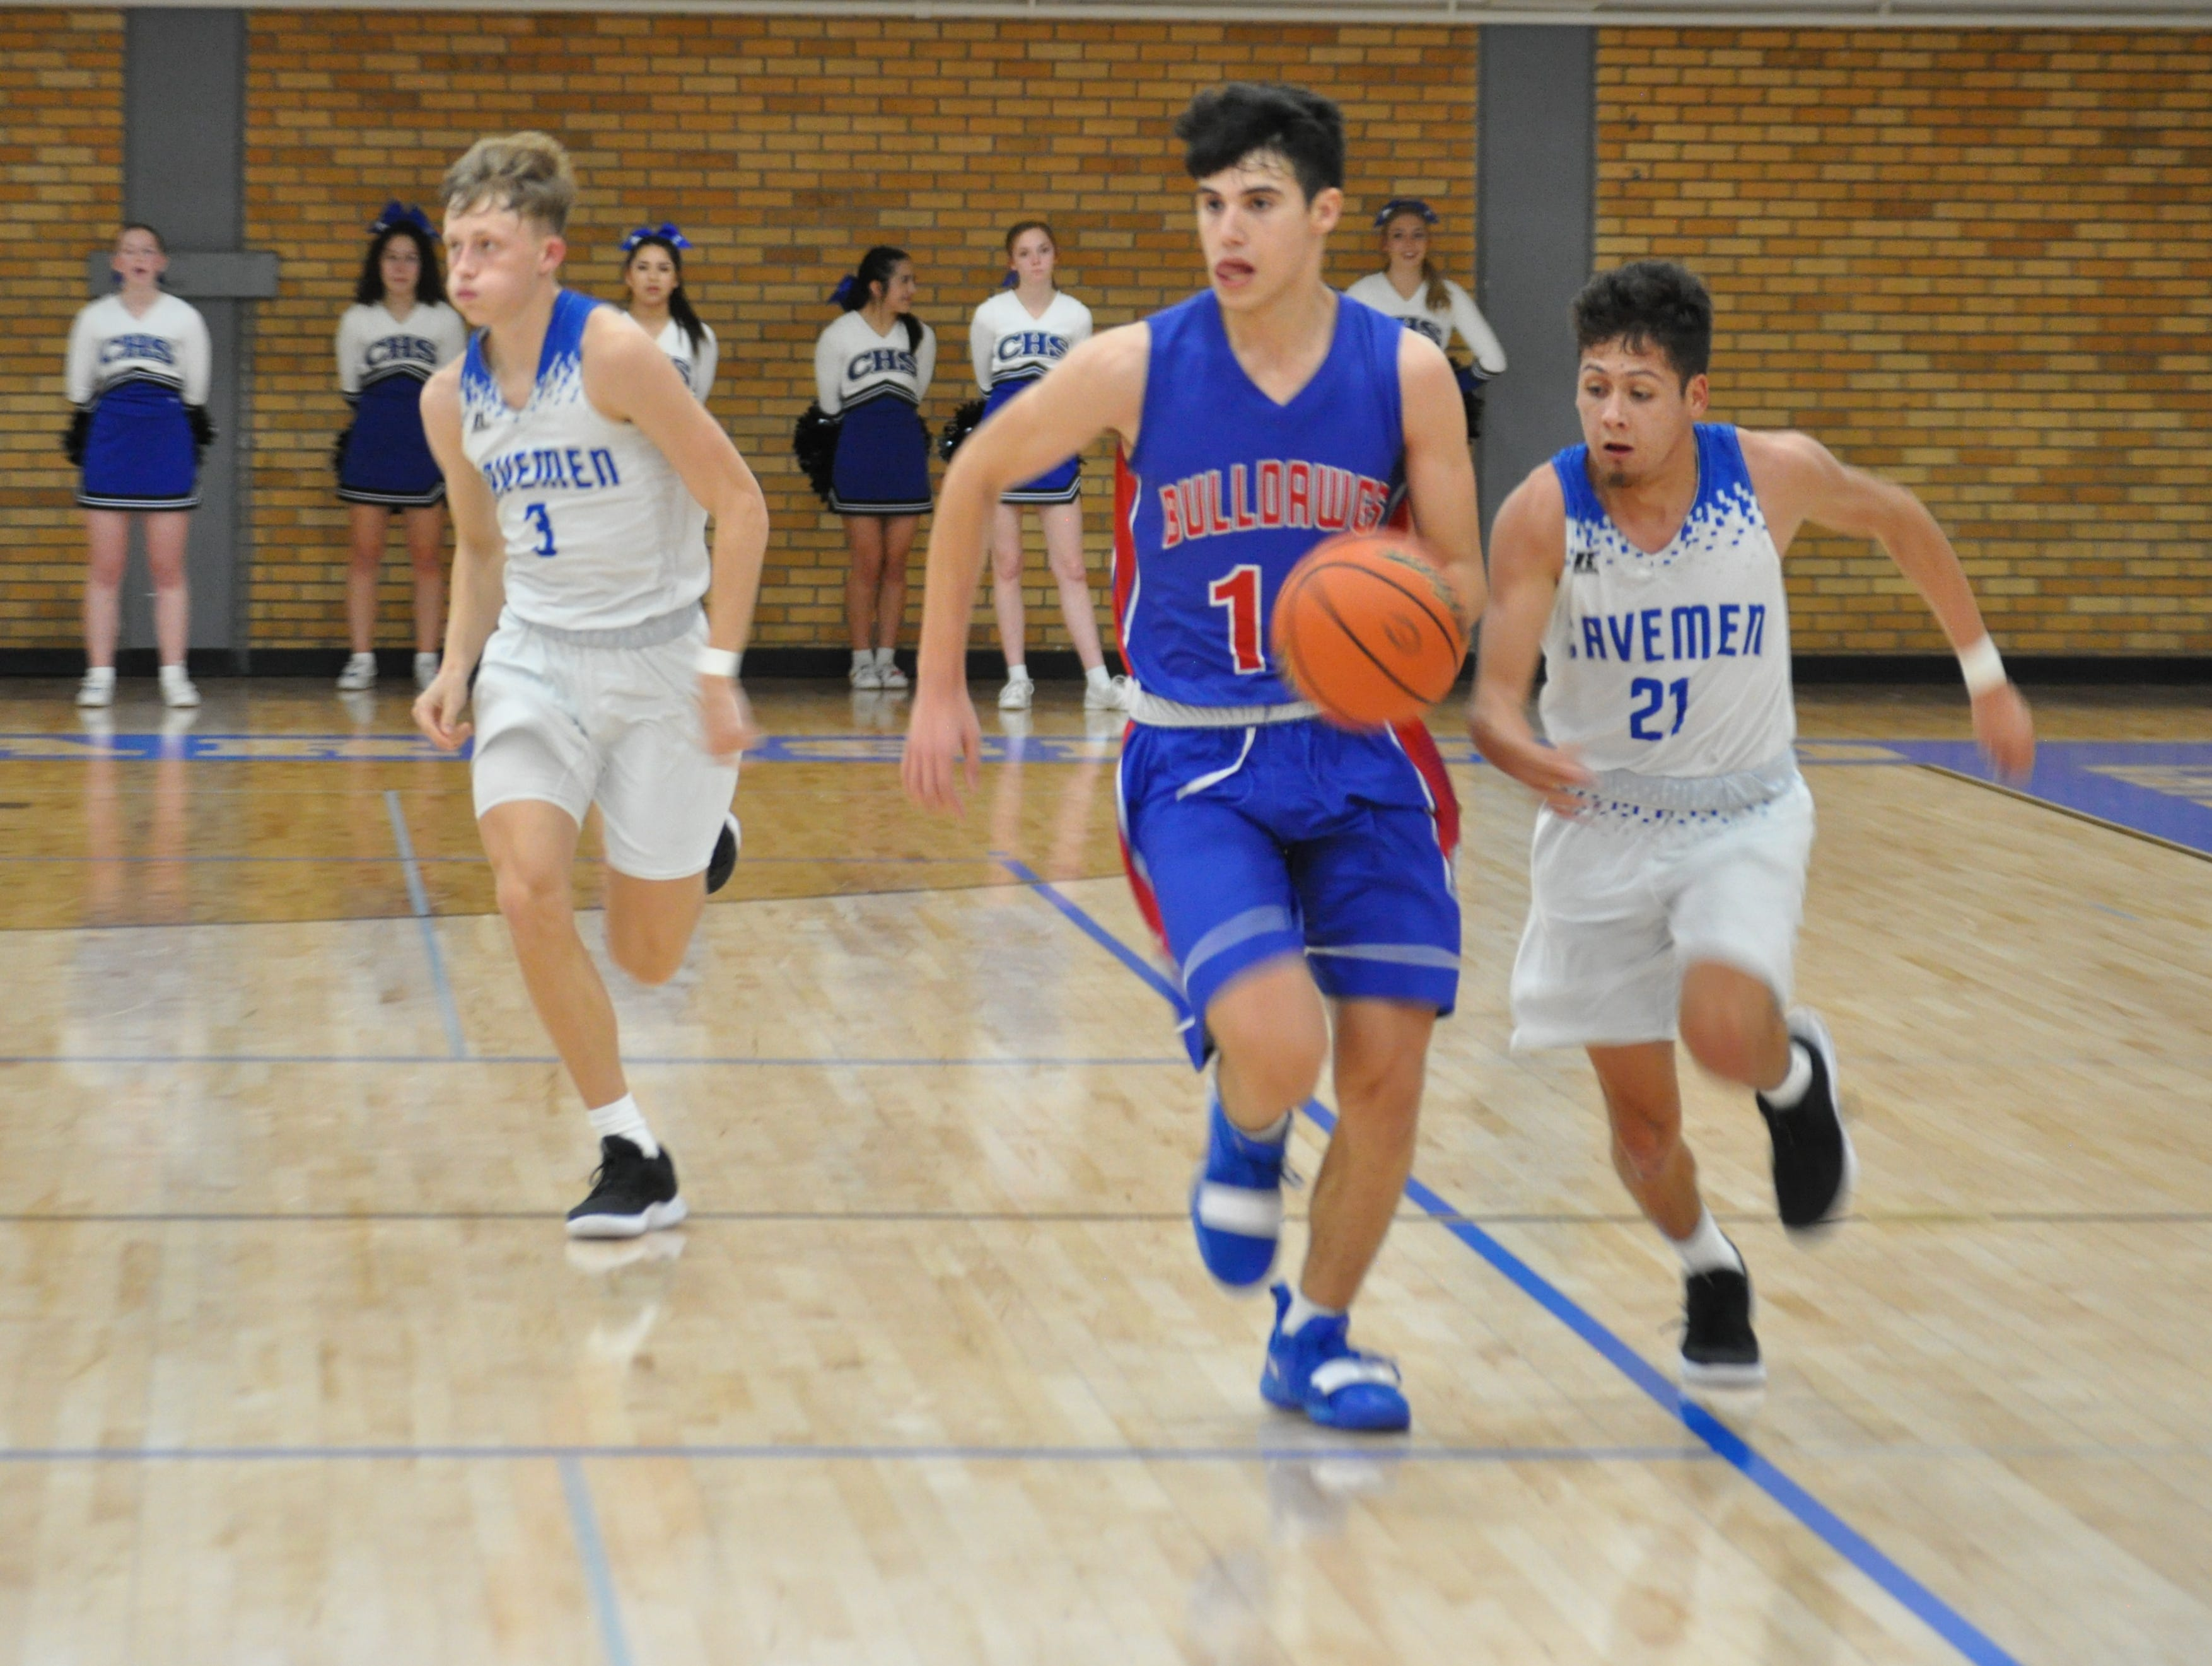 Gonzalo Corbalan starts a fastbreak while Carlsbad's Patrick Espinosa (21) goes for a steal during Friday's game.